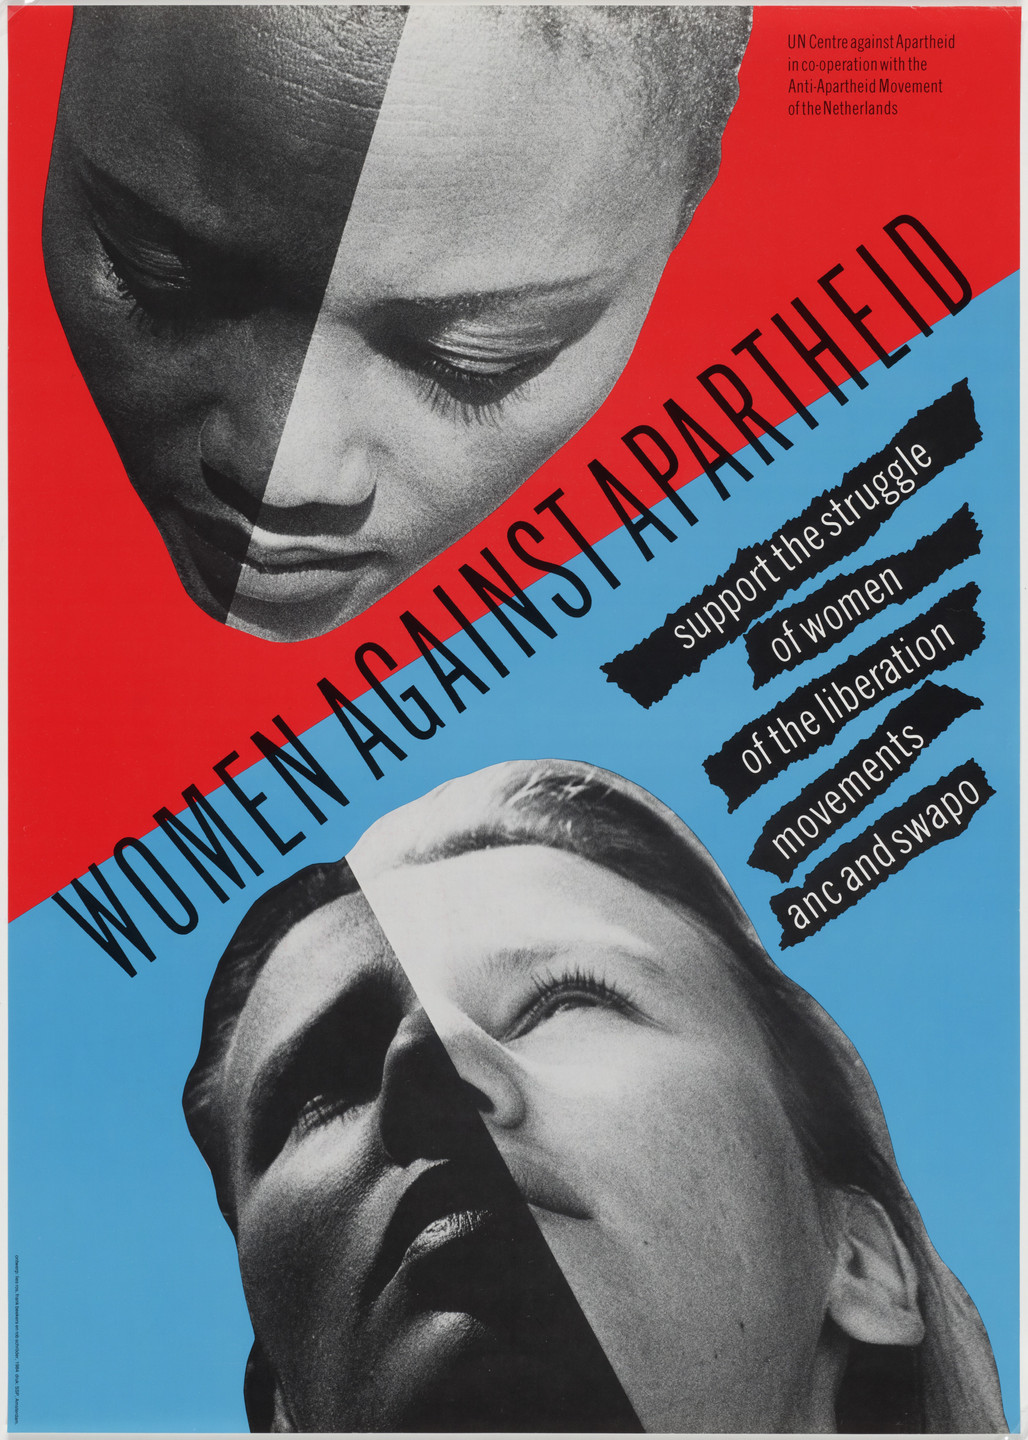 Wild Plakken, Lies Ros, Rob Schroder. Women Against Apartheid. 1984